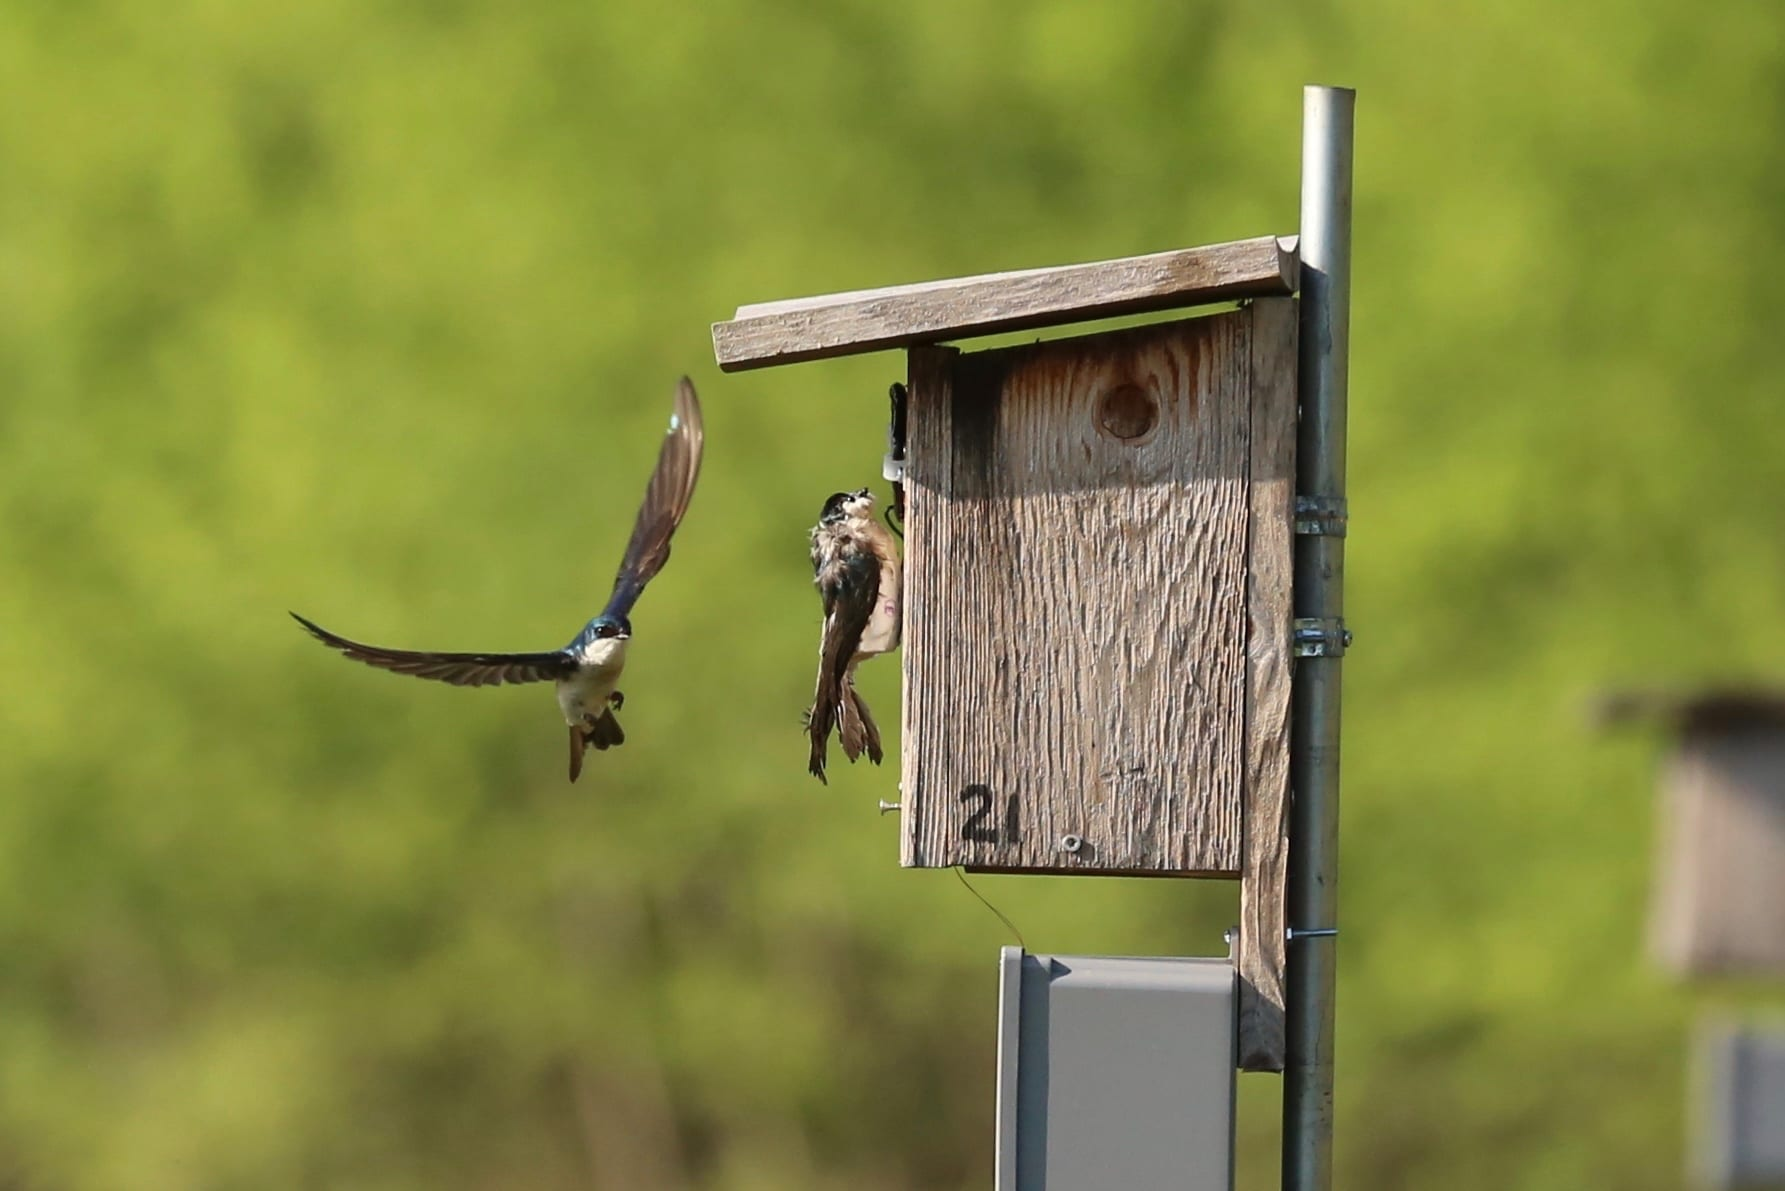 An adult bird flies toward a 3D-printed bird decoy of the same species that is resting at the opening of a wooden bird box. The bird box is attached to a metal pole, and the small gray box underneath hold automated readers for recording individual bird's comings and goings. Both the resident bird and decoy have white feathers on their abdomens and iridescent green-blue feathers on their heads, necks, and backs.